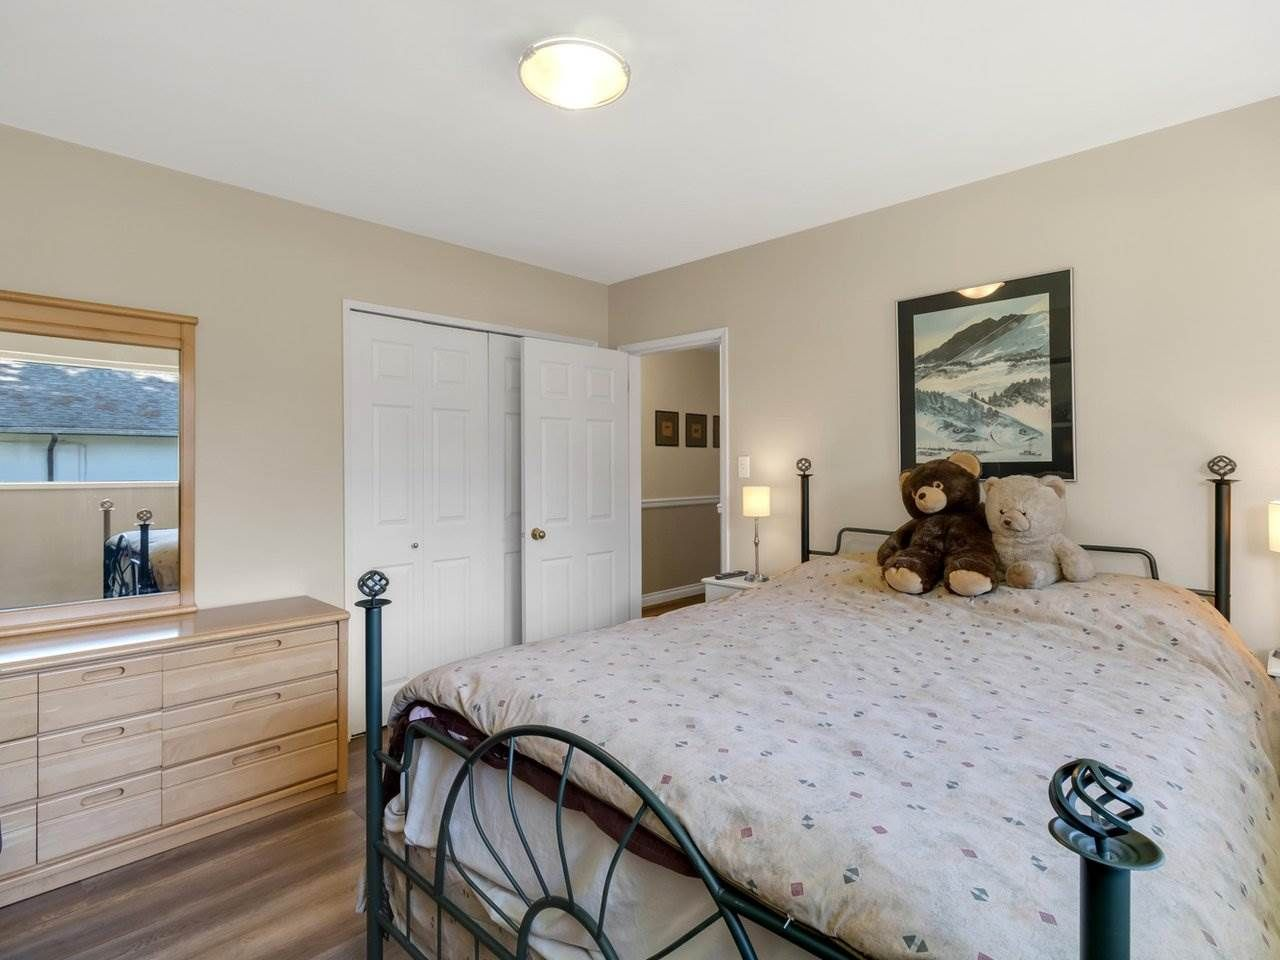 Photo 16: Photos: 943 GATENSBURY Street in Coquitlam: Harbour Chines House for sale : MLS®# R2499202